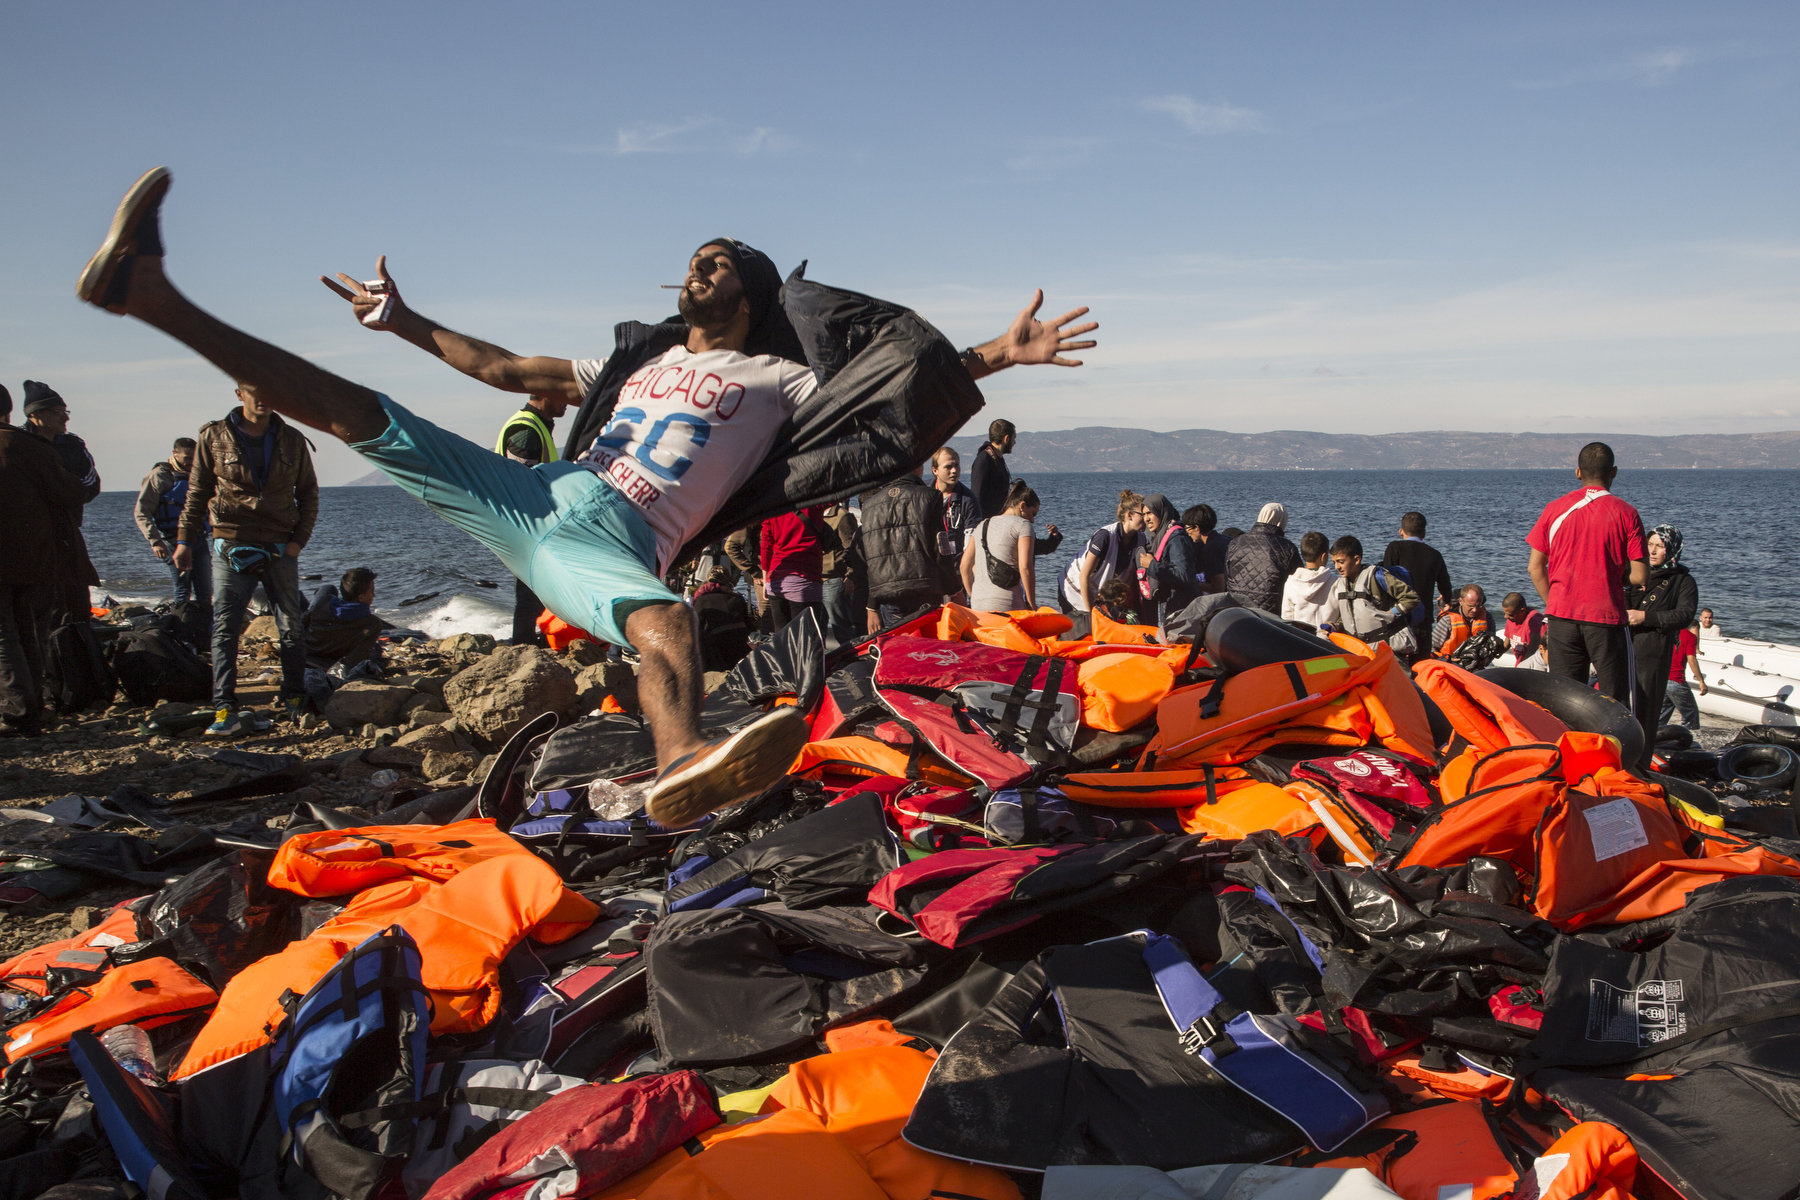 LESBOS, GREECE - OCTOBER 27: A Syrian refugee jumps for joy onto a pile of life jackets after arriving on an overcrowded raft to the island of Lesbos, Greece on October 27, 2015. Dozens of rafts and boats are still making the journey daily via the Aegean Sea, over 590,000 people have crossed into the gateway of Europe. Nearly all of those are from the war zones of Syria, Iraq and Afghanistan. (Photo by Paula Bronstein)